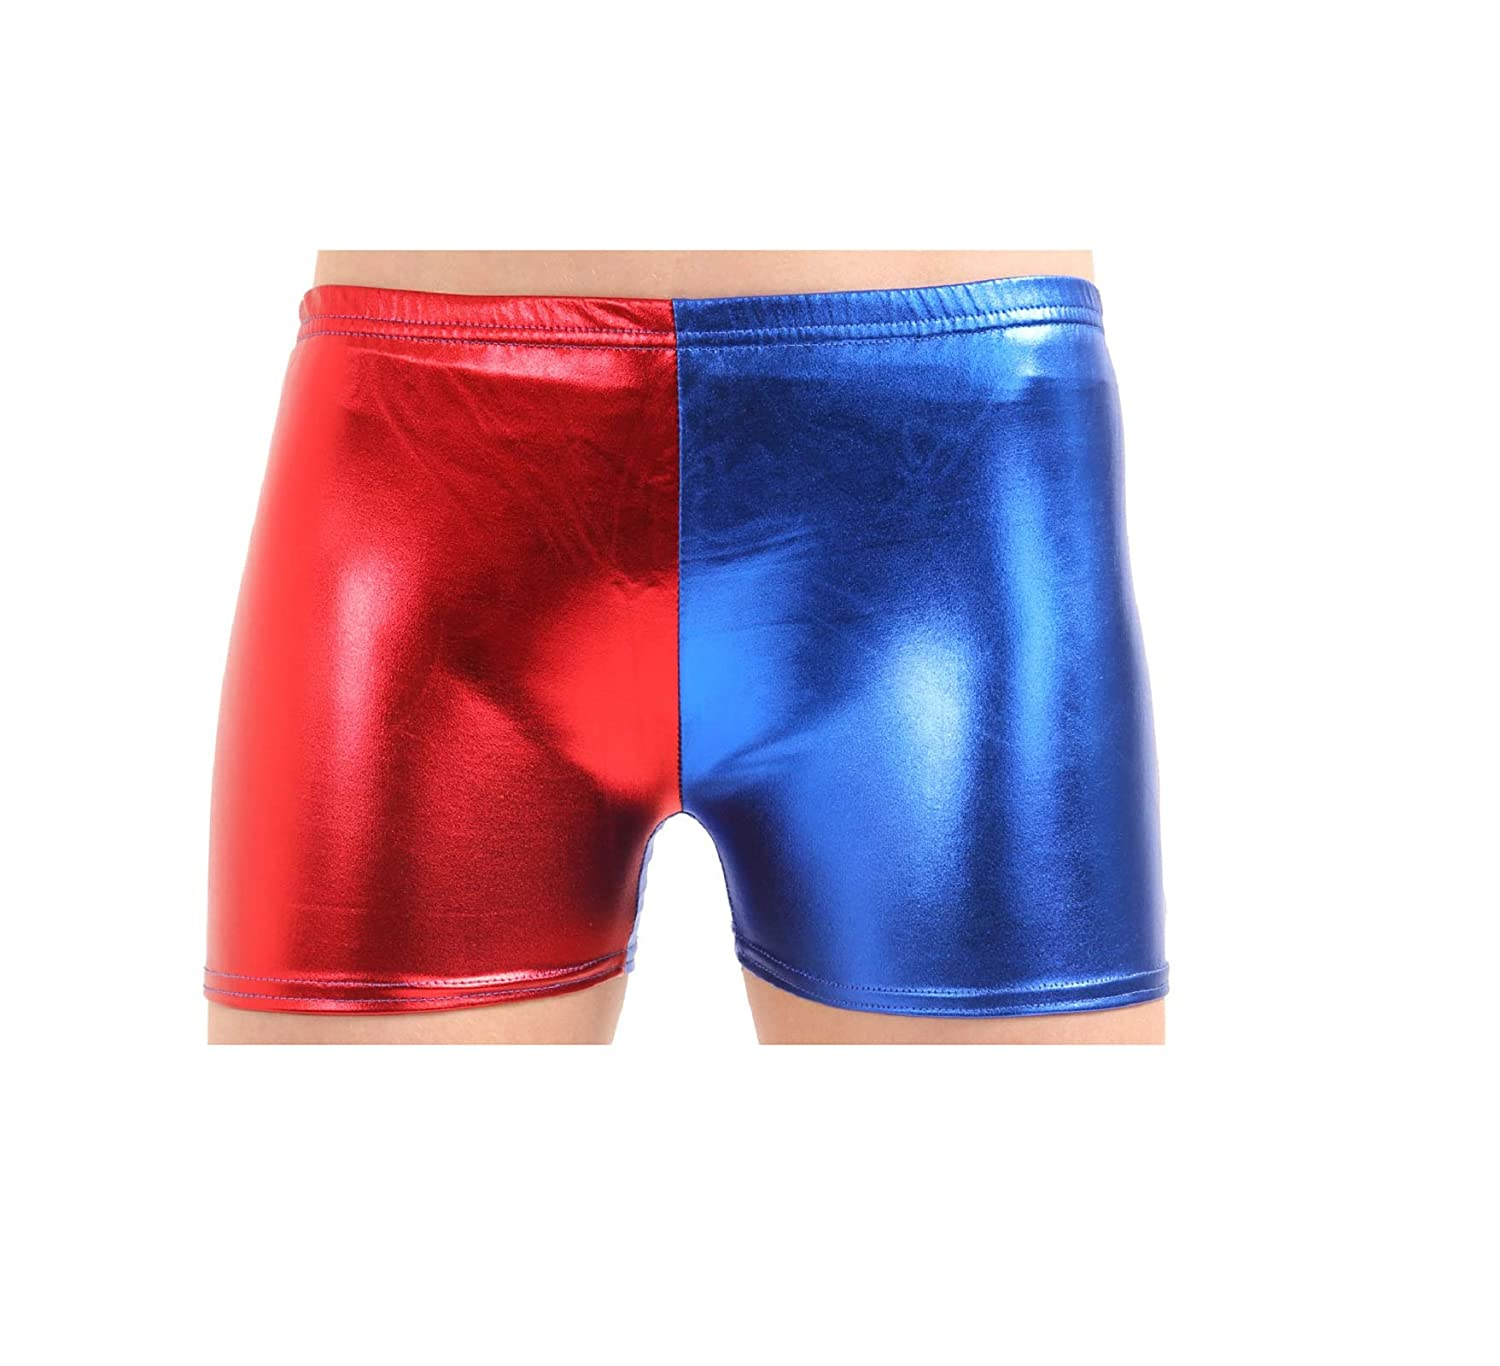 Misfit Booty Shorts Harley Quinn Fancy Dress Halloween Adult Costume Accessory